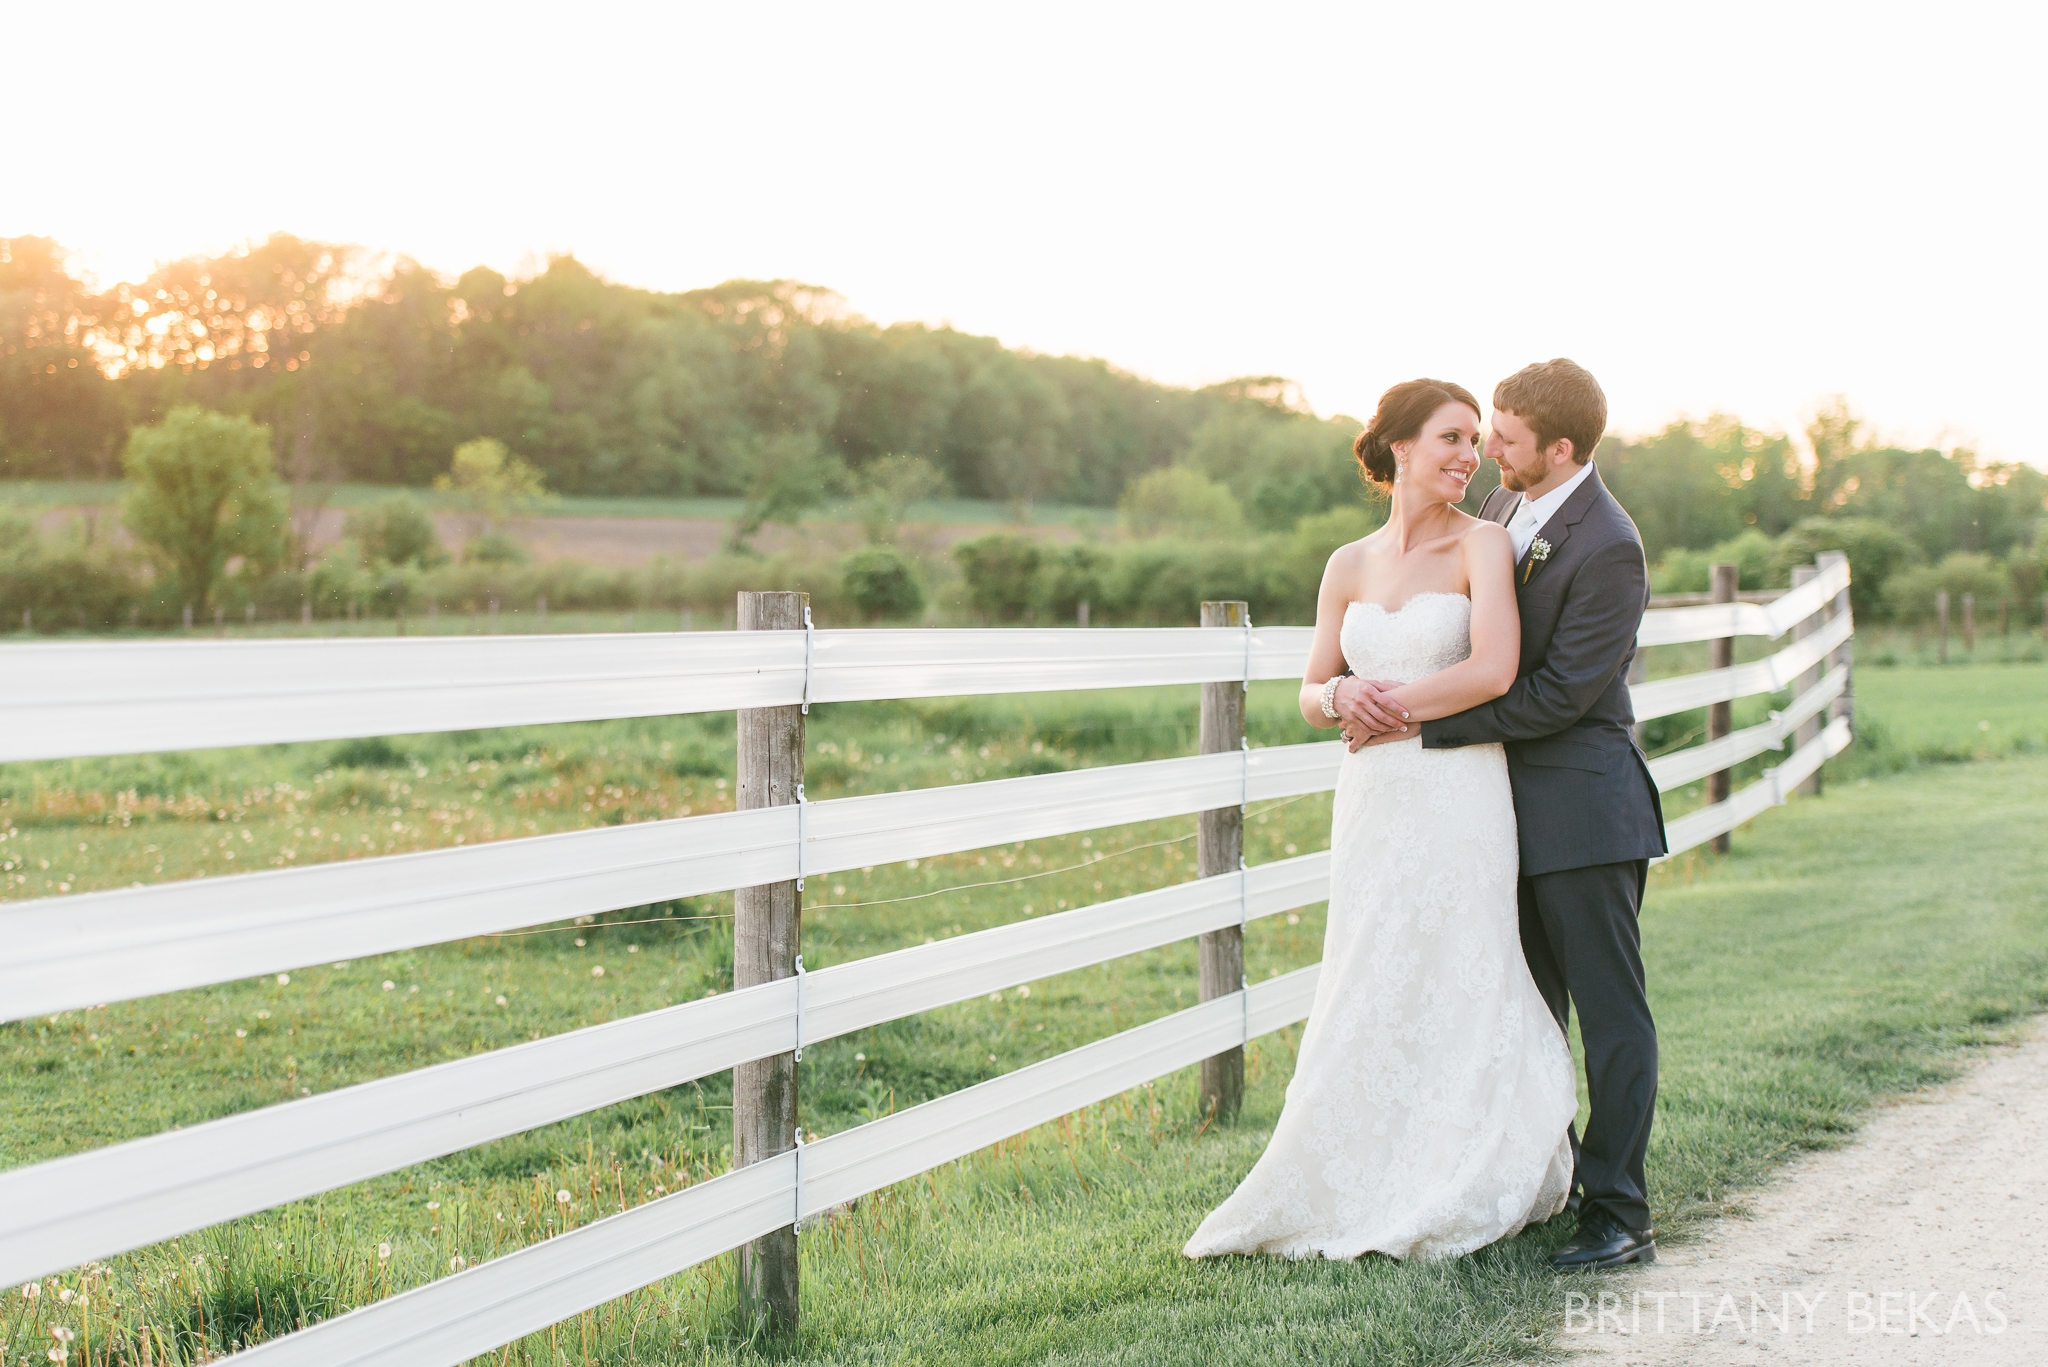 Galena Wedding - Oak Hill Wedding Photos - Brittany Bekas Photography_0046